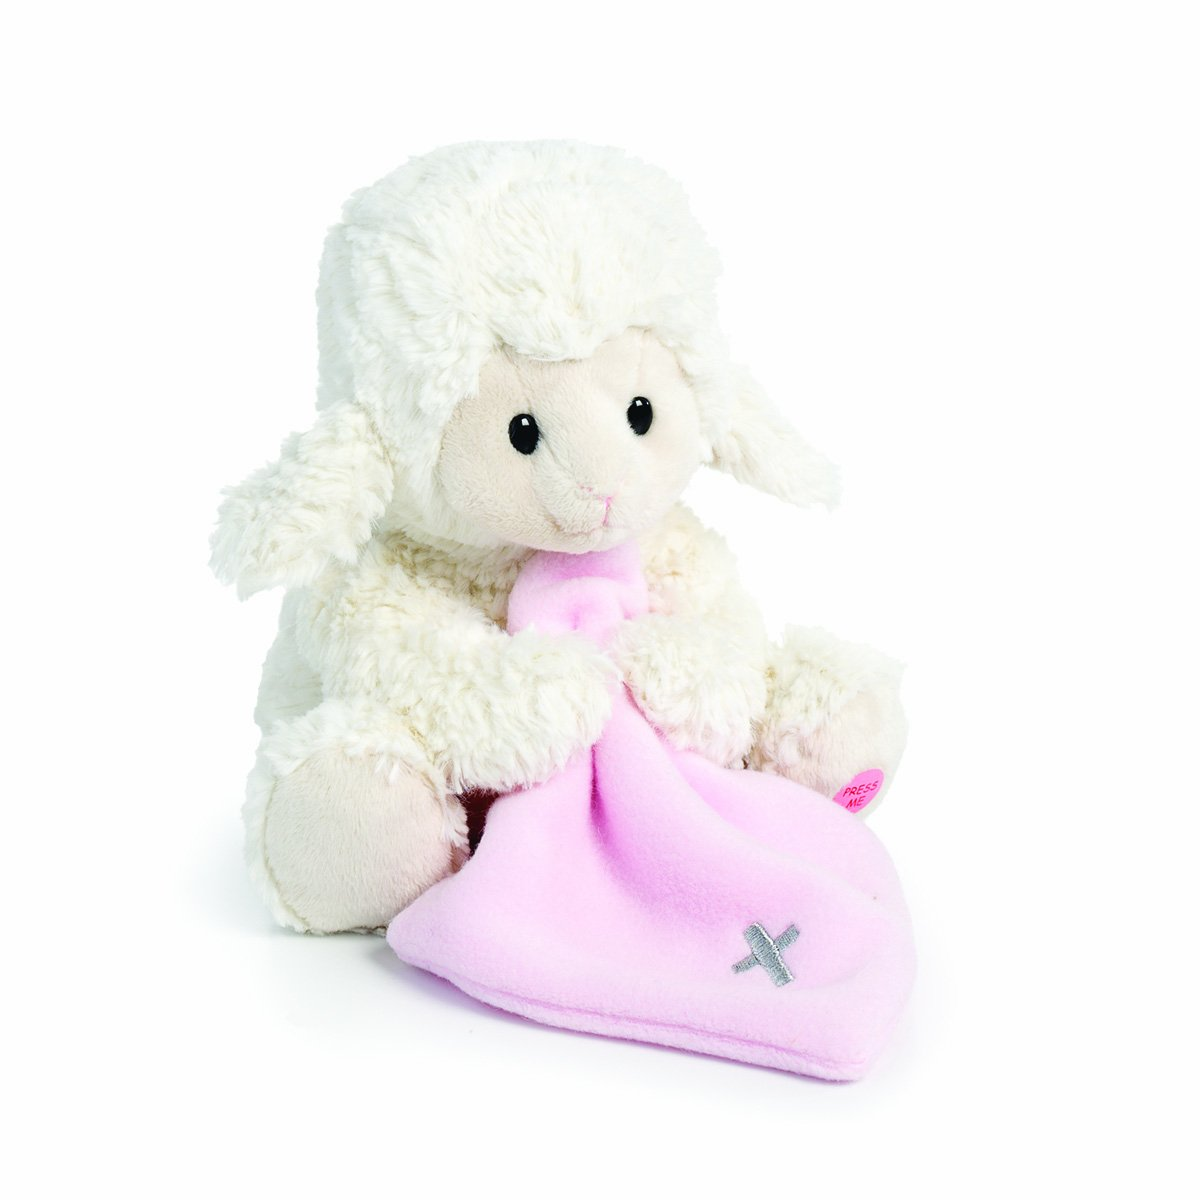 Nat and Jules Jesus Loves Me Lamb With Cross Blanket Children's Plush Stuffed Animal Toy by Demdaco (Image #1)